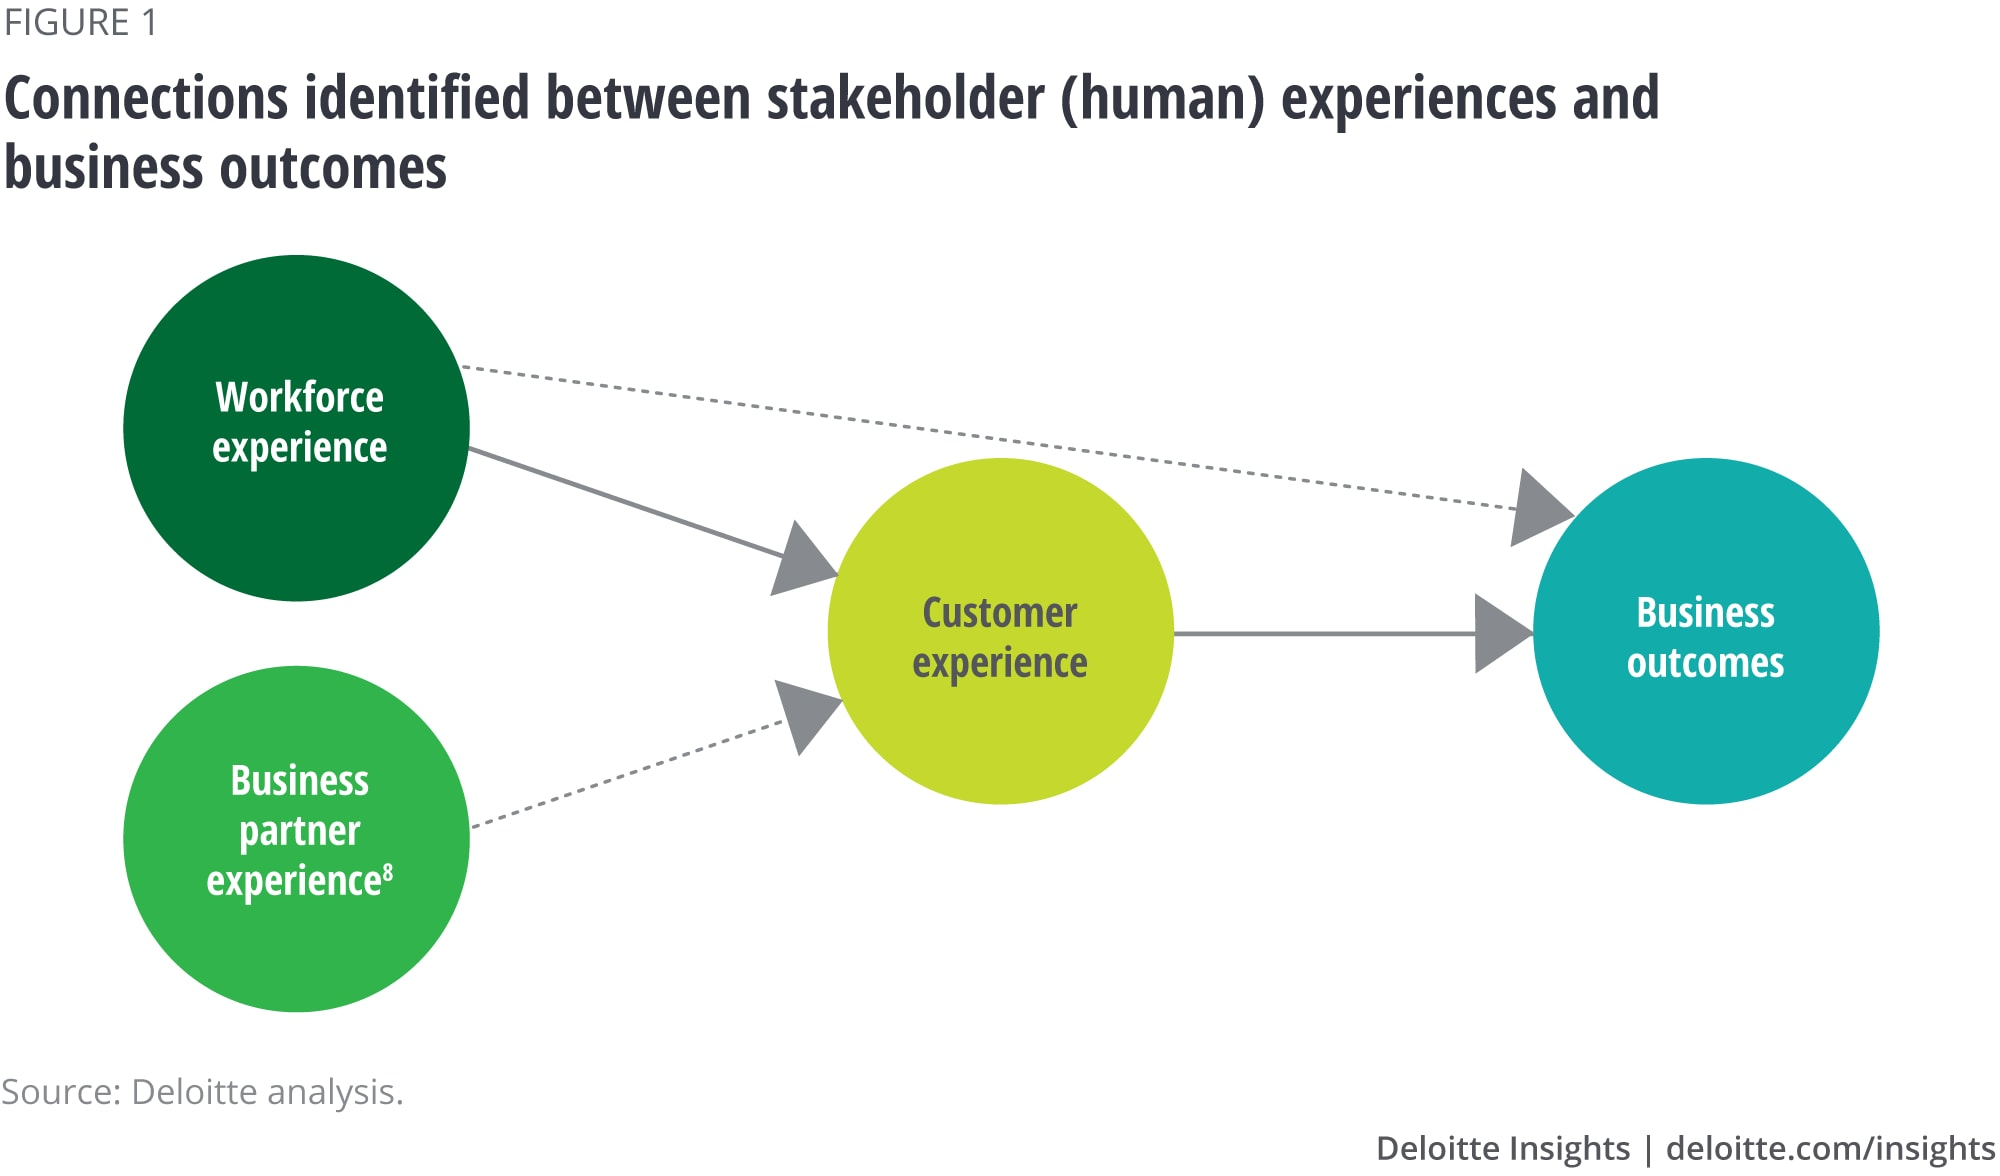 Connections identified between stakeholder (human) experiences and business outcomes